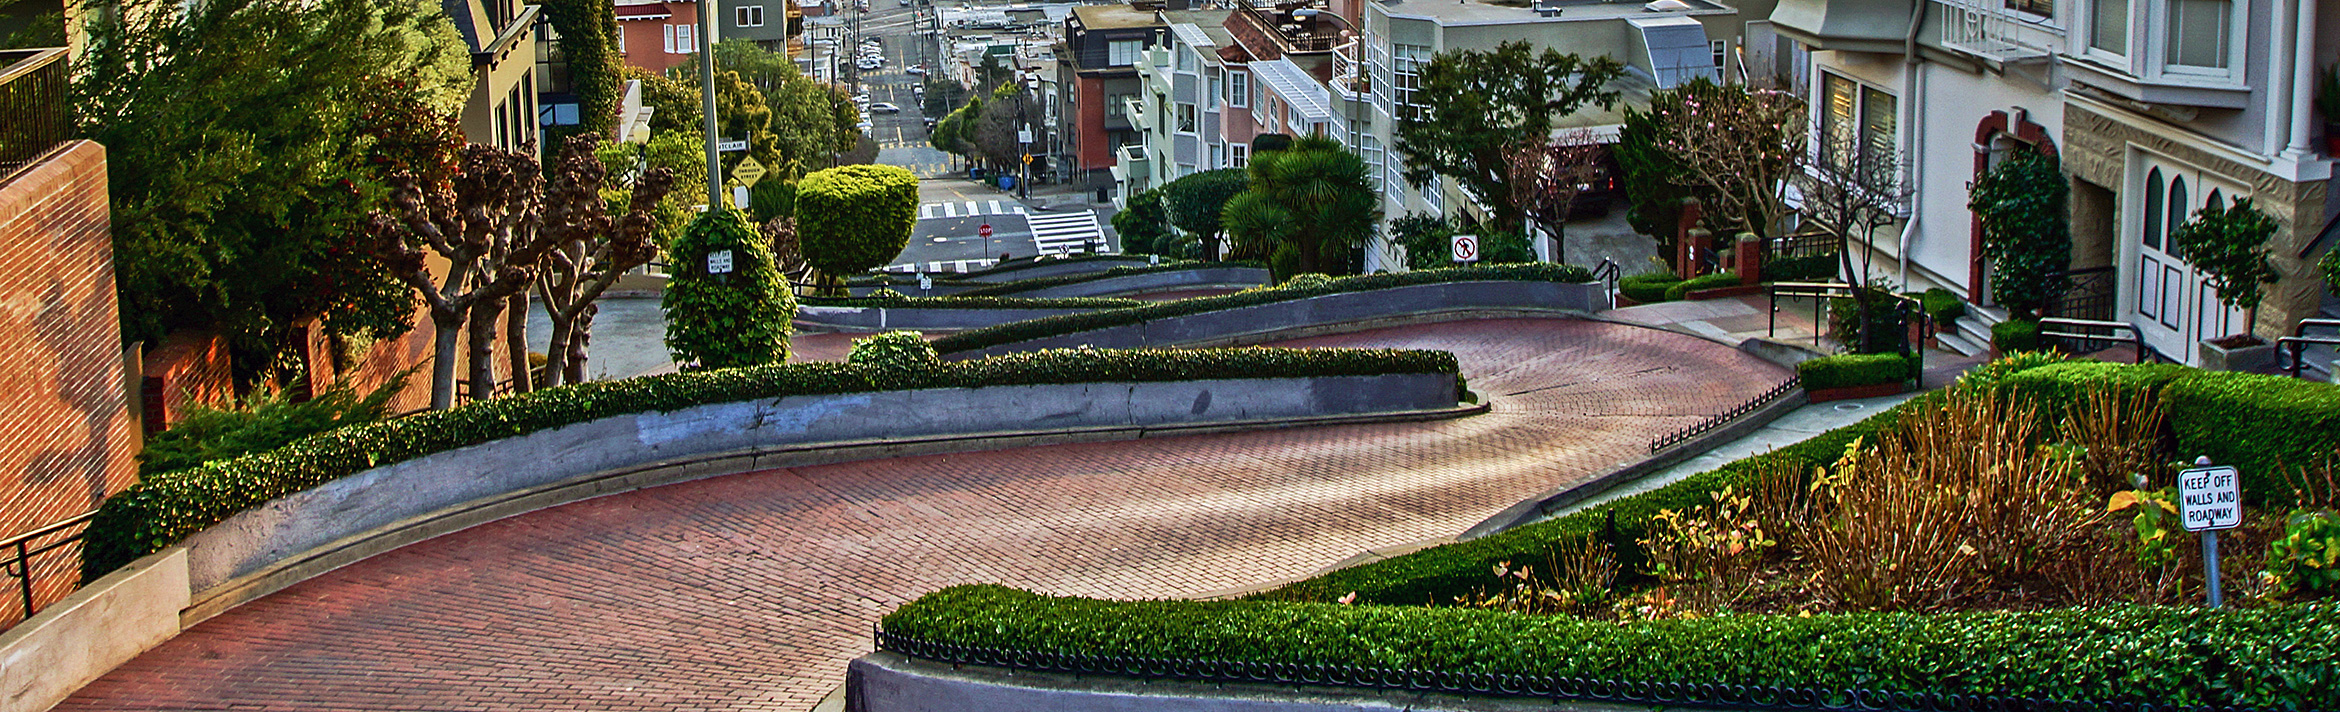 Axford House San Francisco, Lombard Street | Crookedest Street | San Francisco, CA